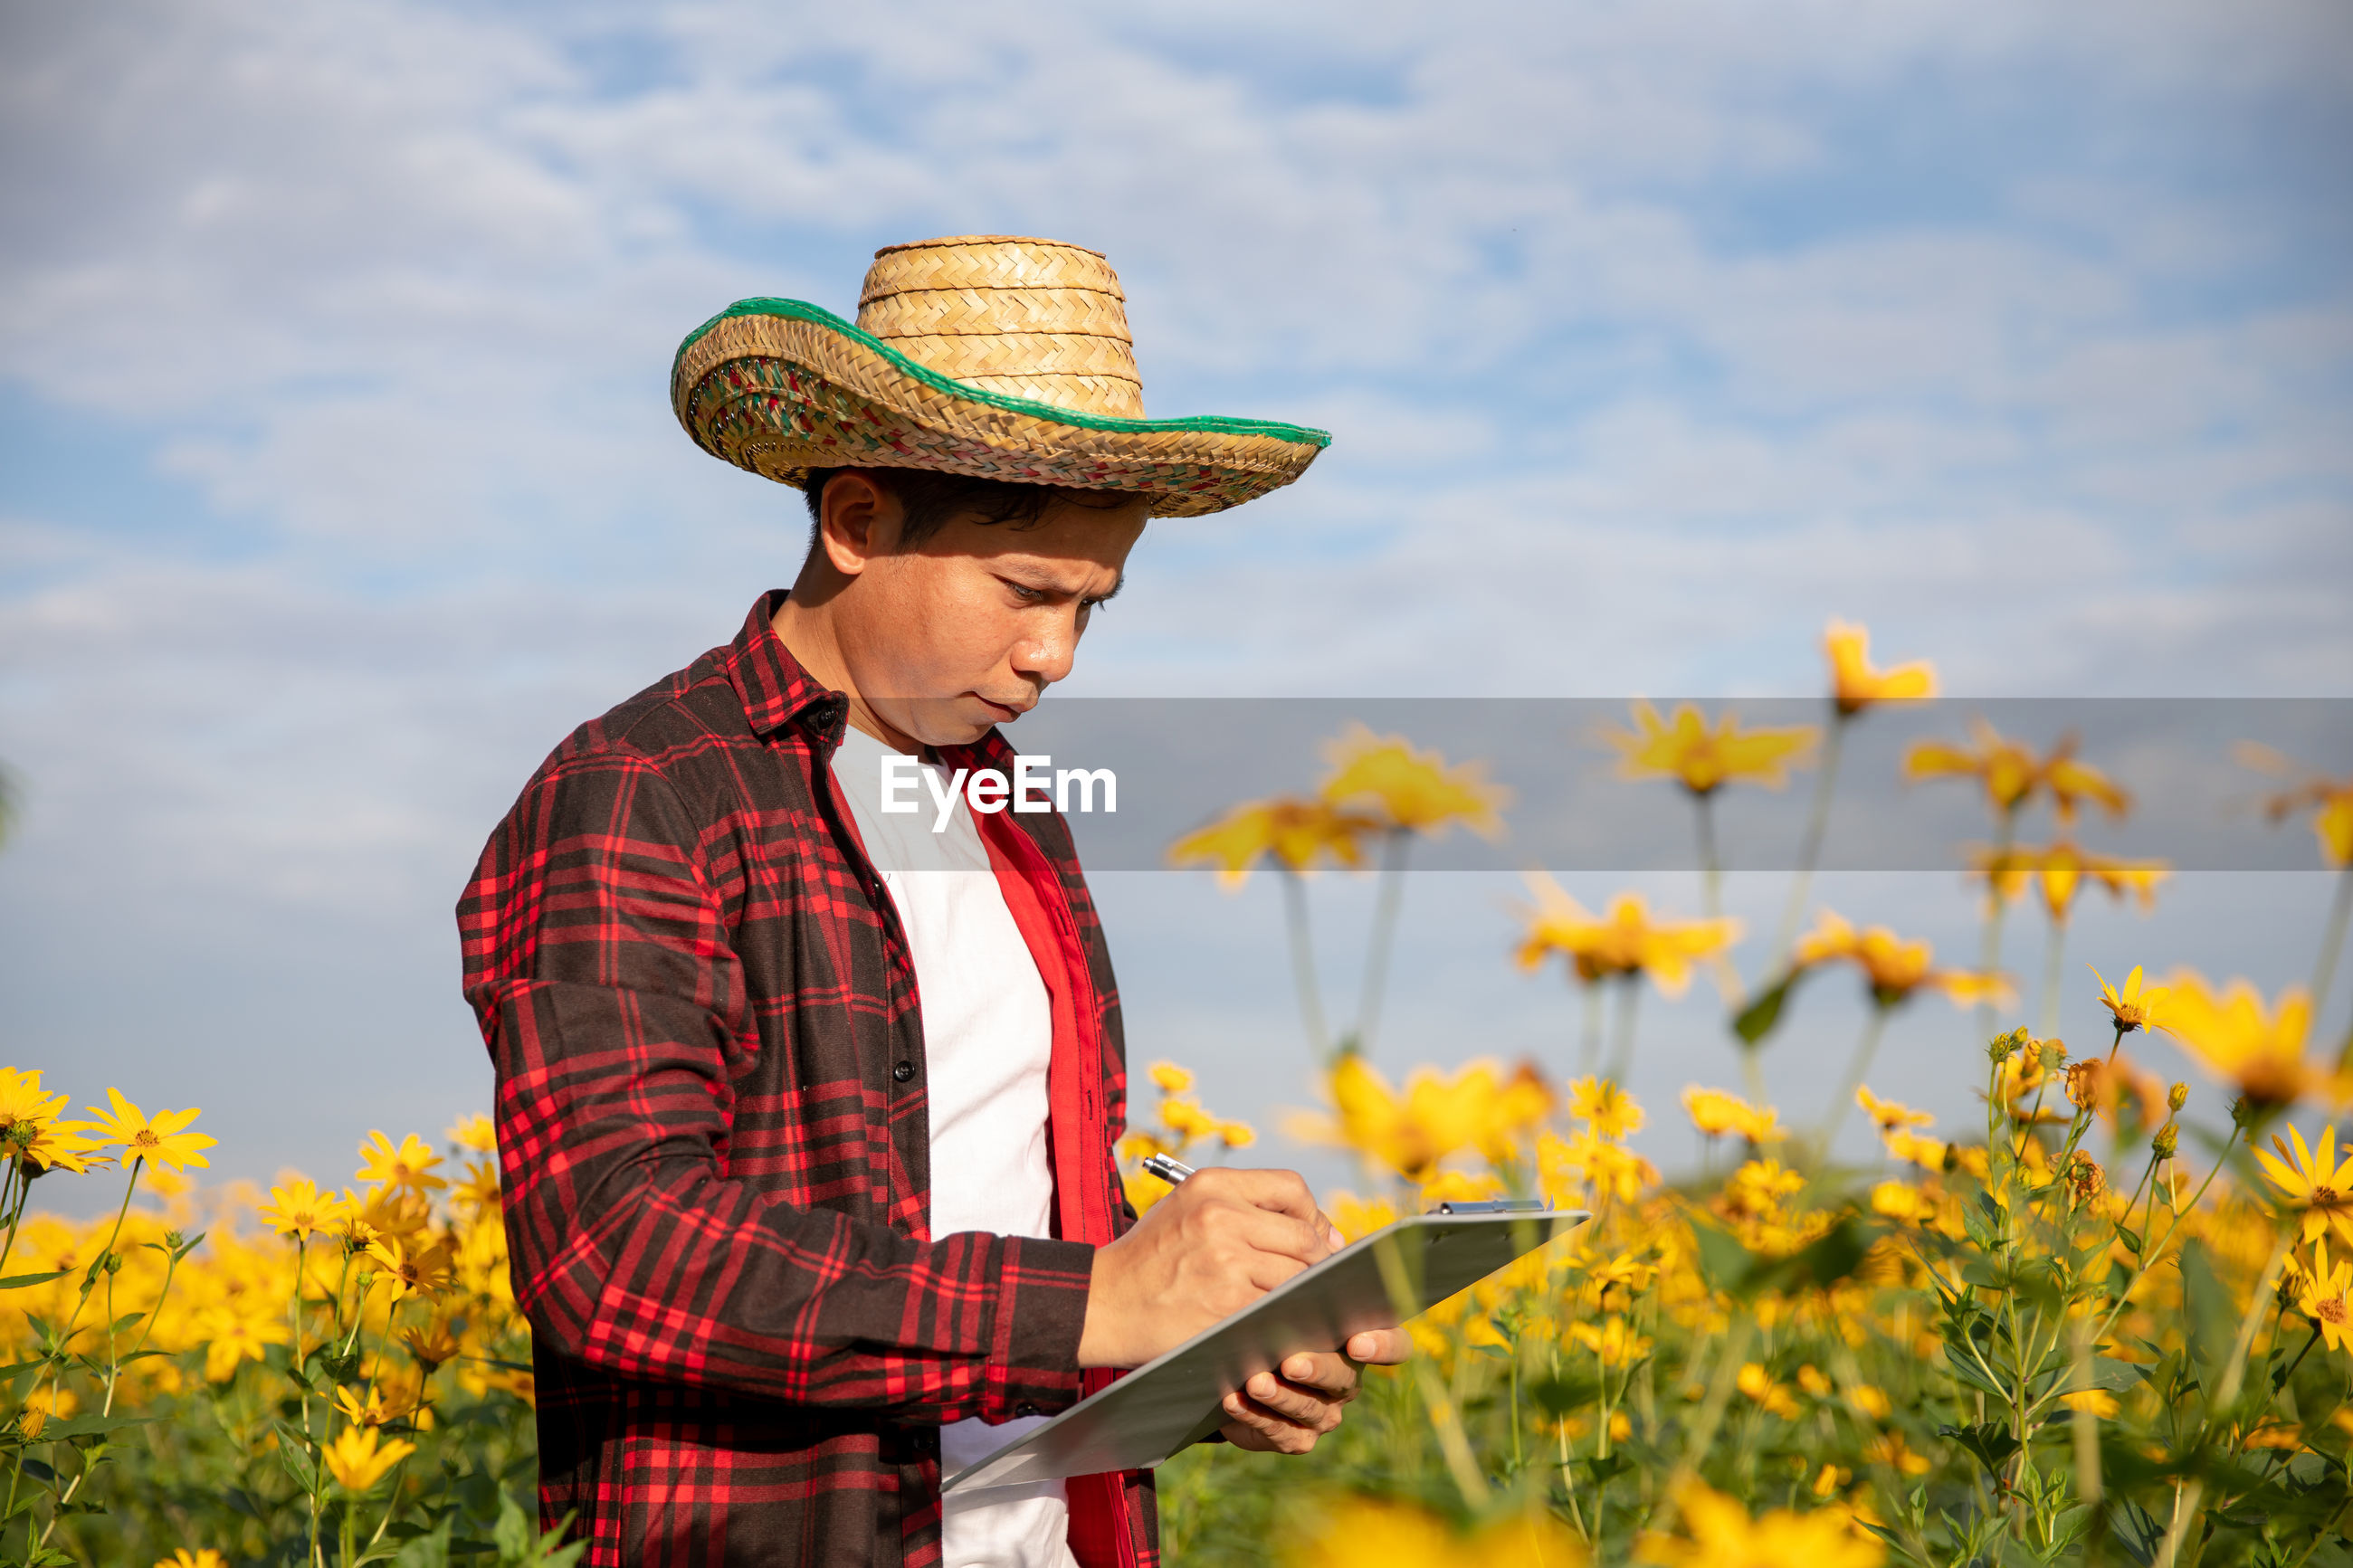 Man writing over paper while standing by flowering plants against sky